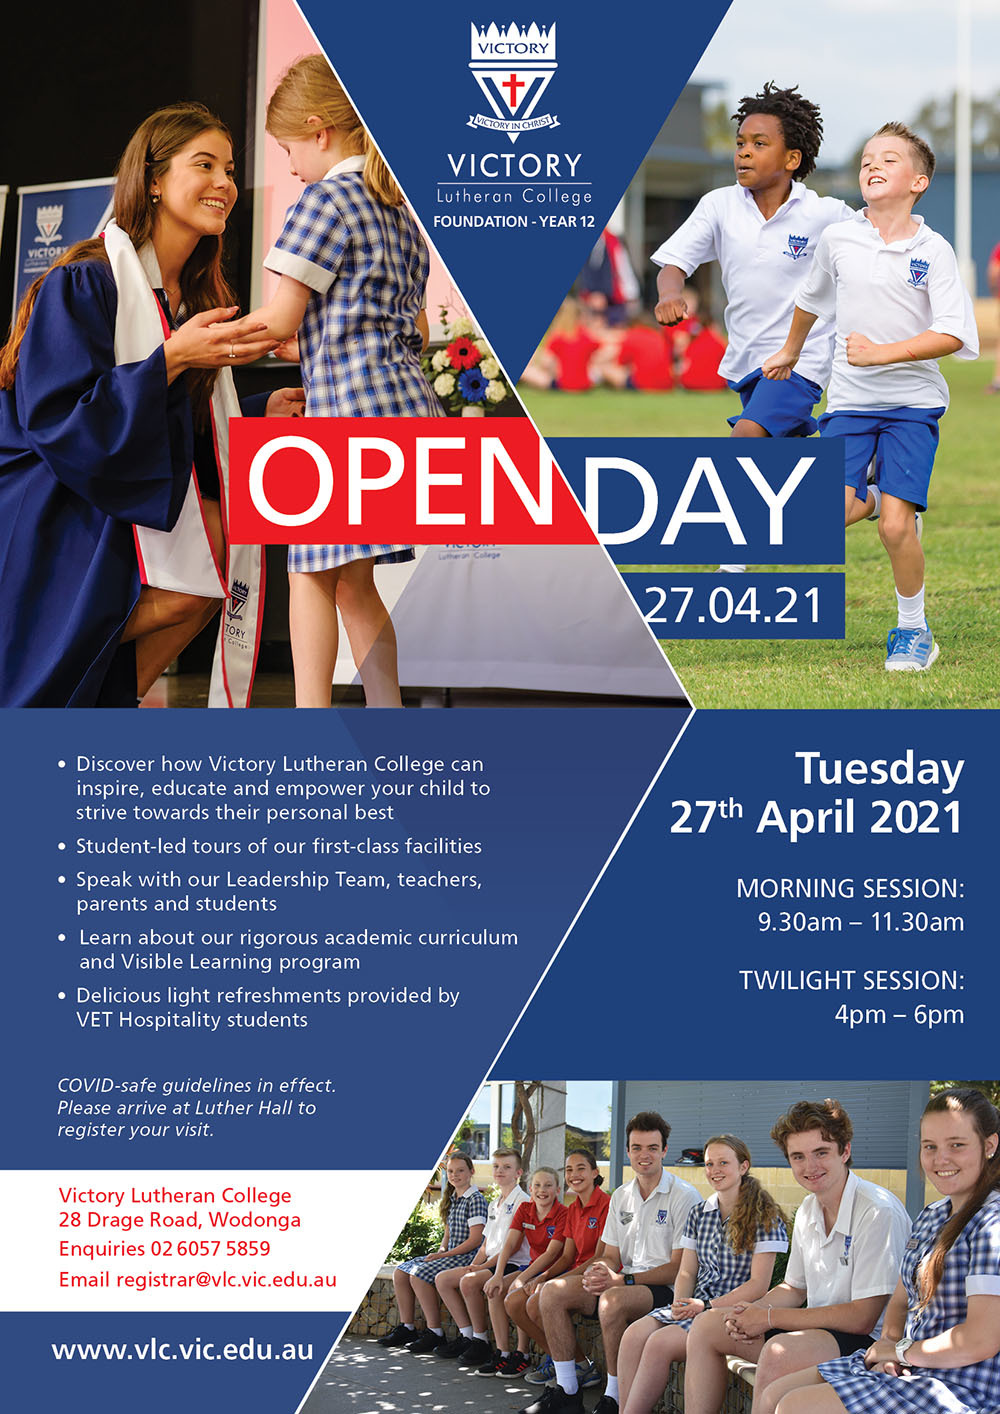 2021 Open Day Postcard Invite A4